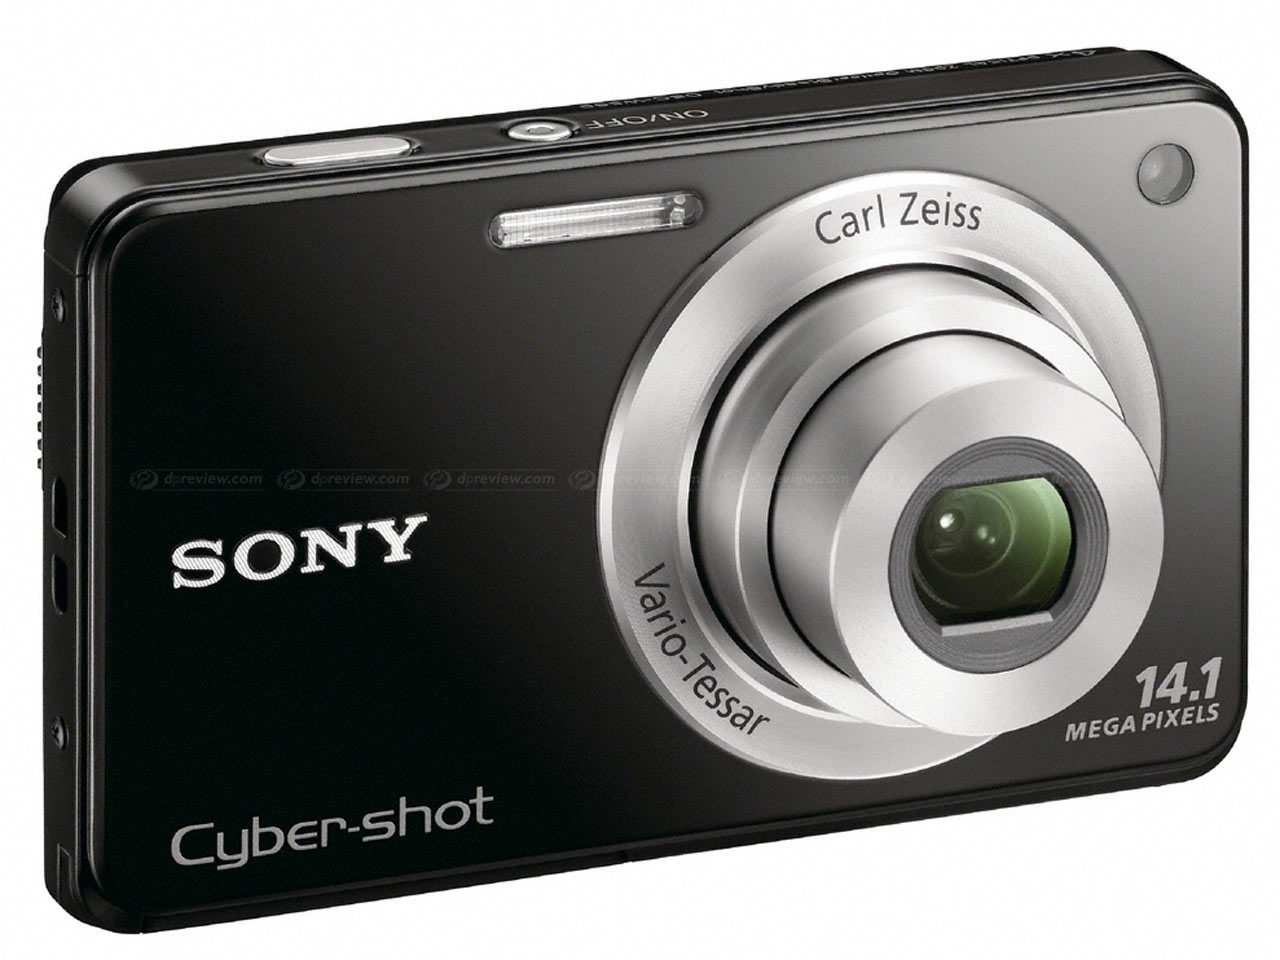 Sony Cybershot Photo Recovery